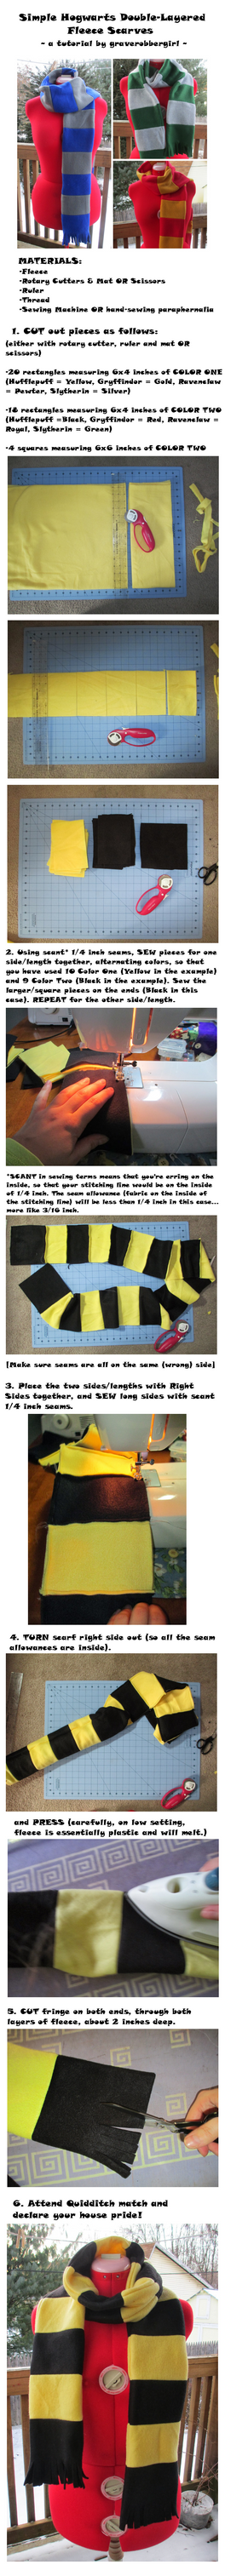 Hogwarts Fleece Scarf Tutorial by grg-costuming